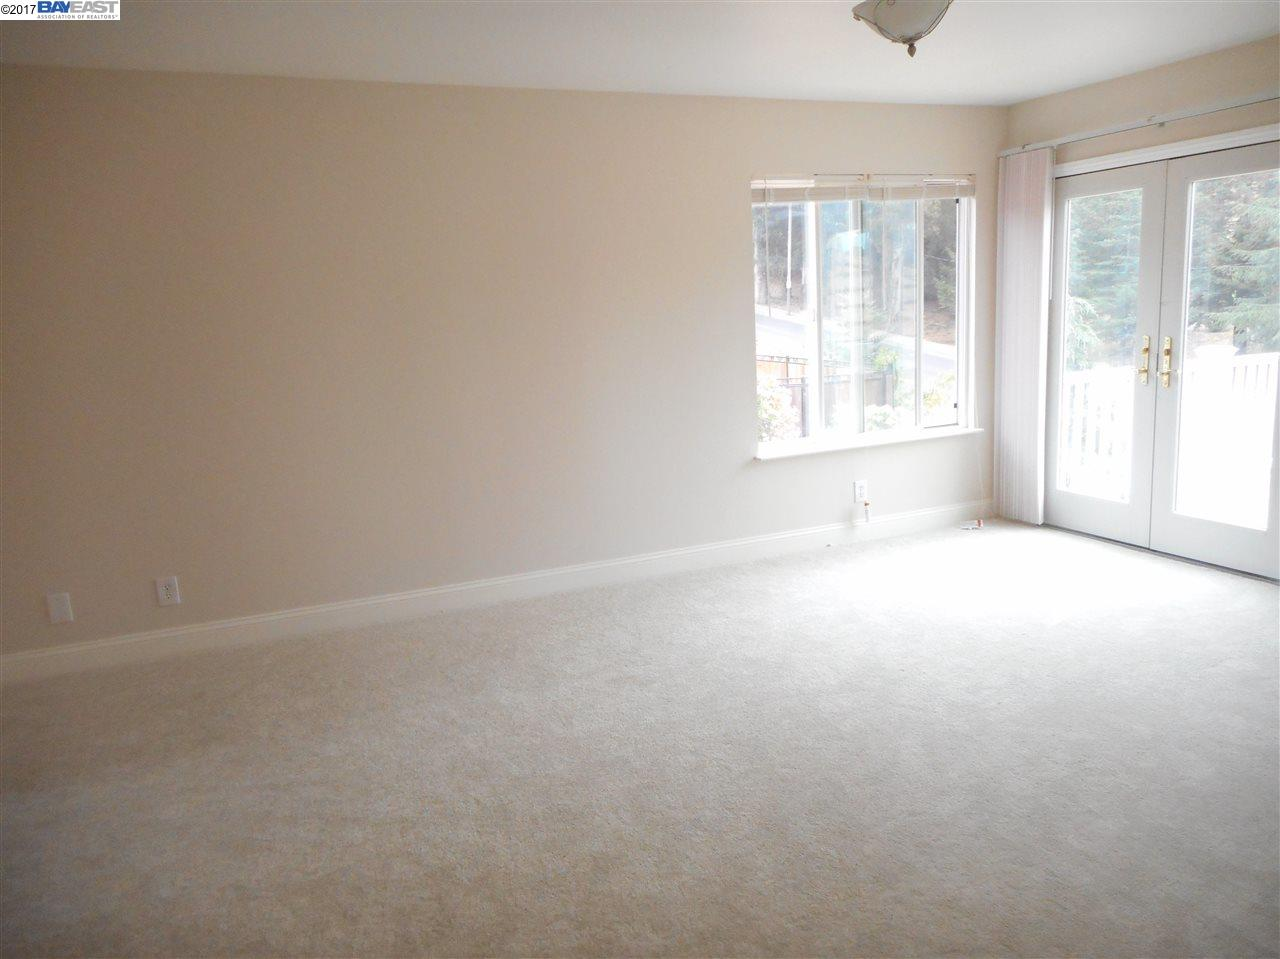 Additional photo for property listing at 27097 Call Avenue  Hayward, Californie 94524 États-Unis